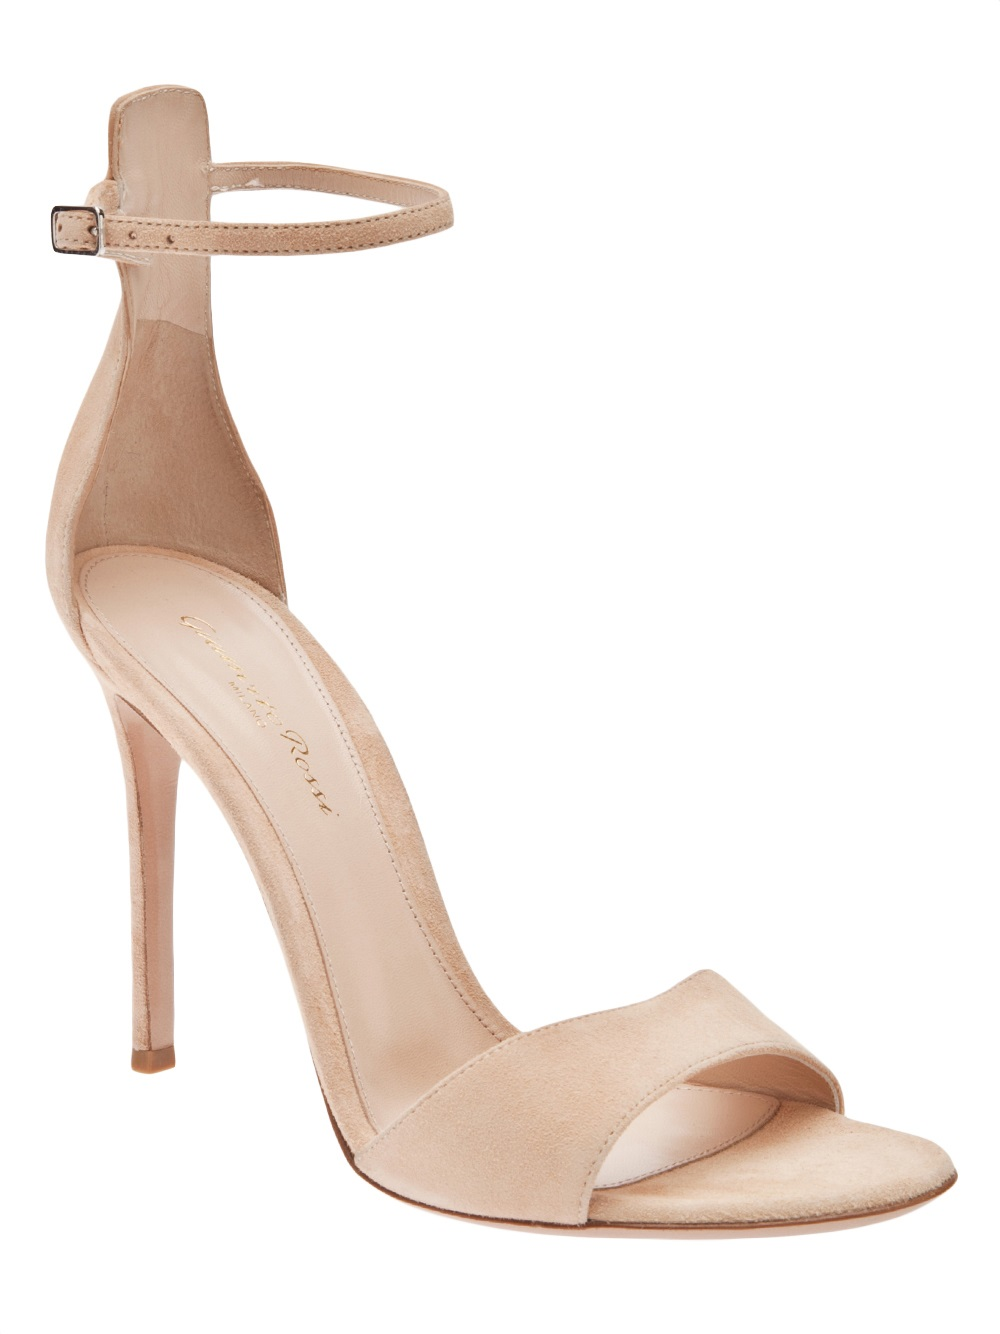 ea2ffc8589 Gianvito Rossi Ankle Strap Sandal in Natural - Lyst